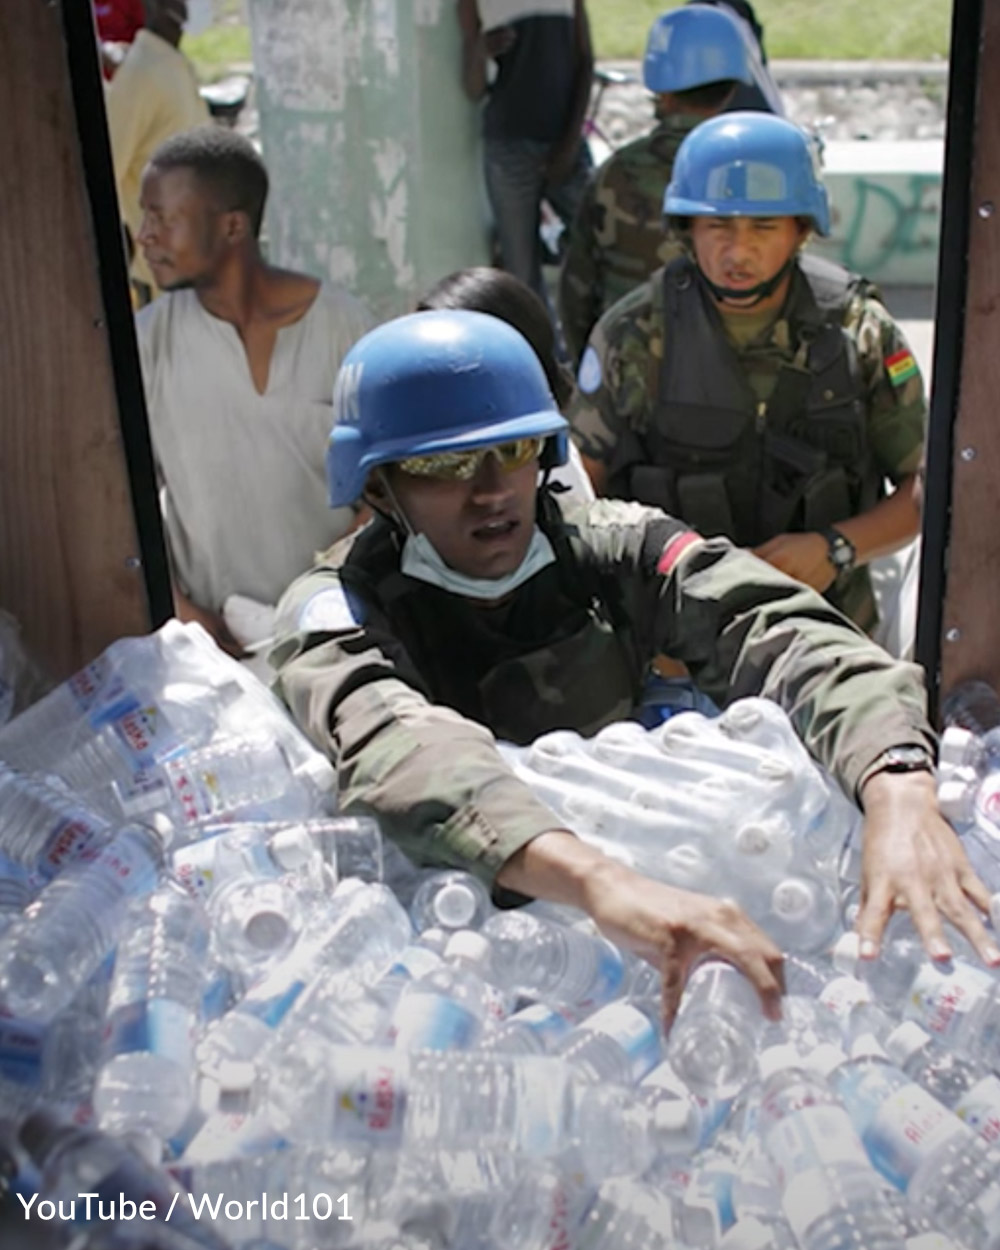 U.S. troops deliver water to people in need.